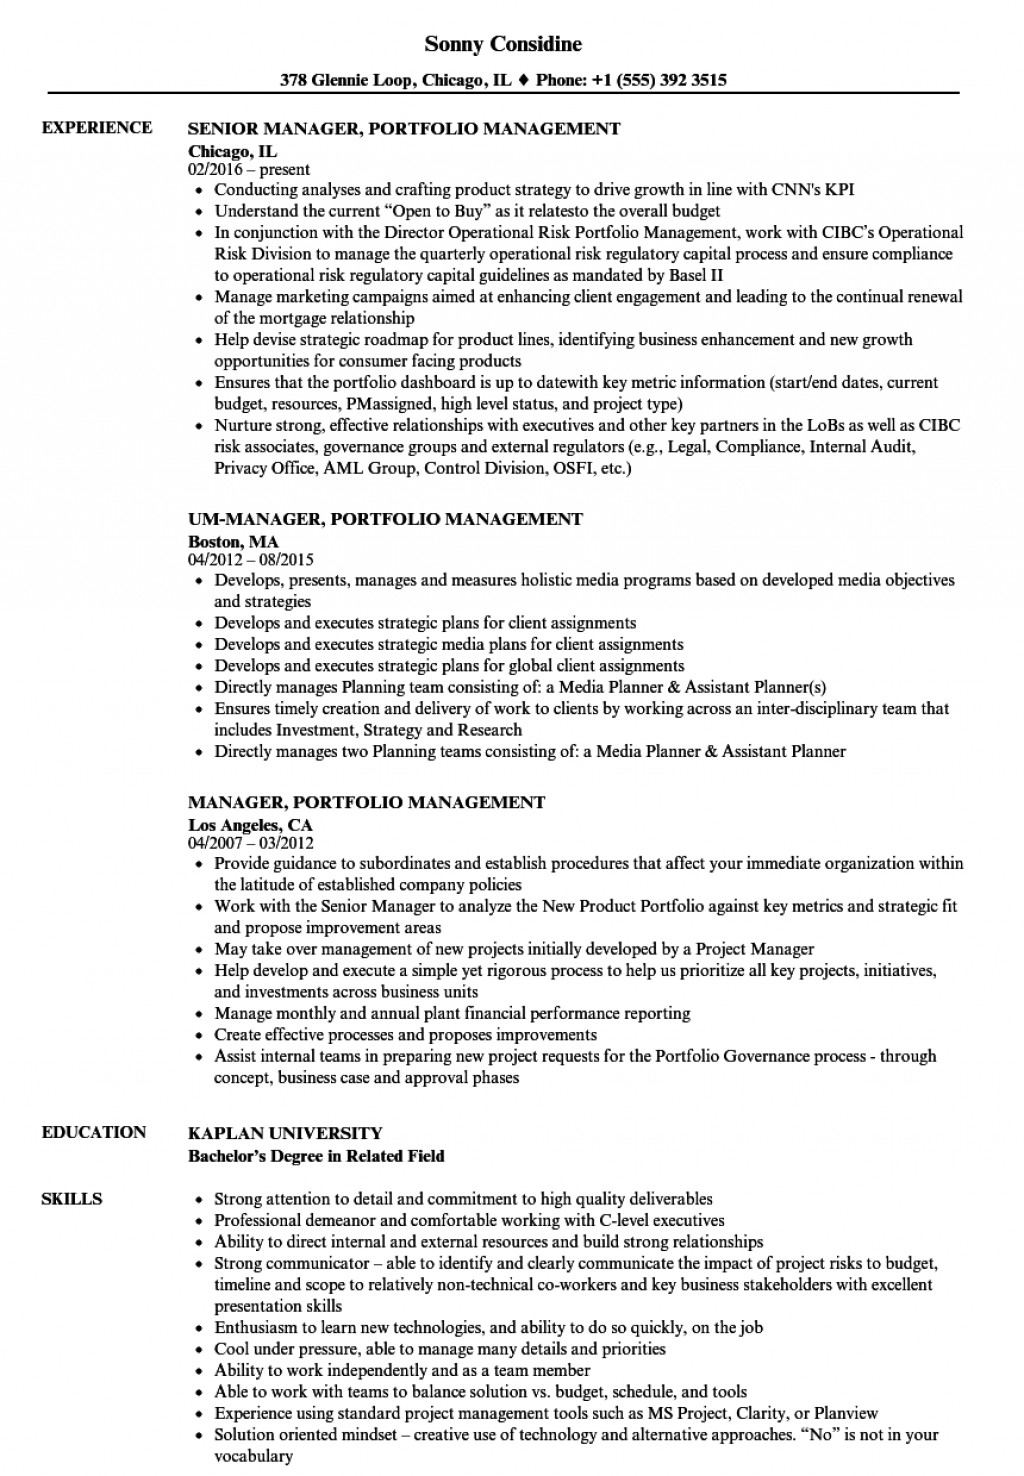 015 Why Do You Want To Teacher Essay Example Manager Portfolio Management Resume Impressive Be A Pdf Become An English Home Based Online Large